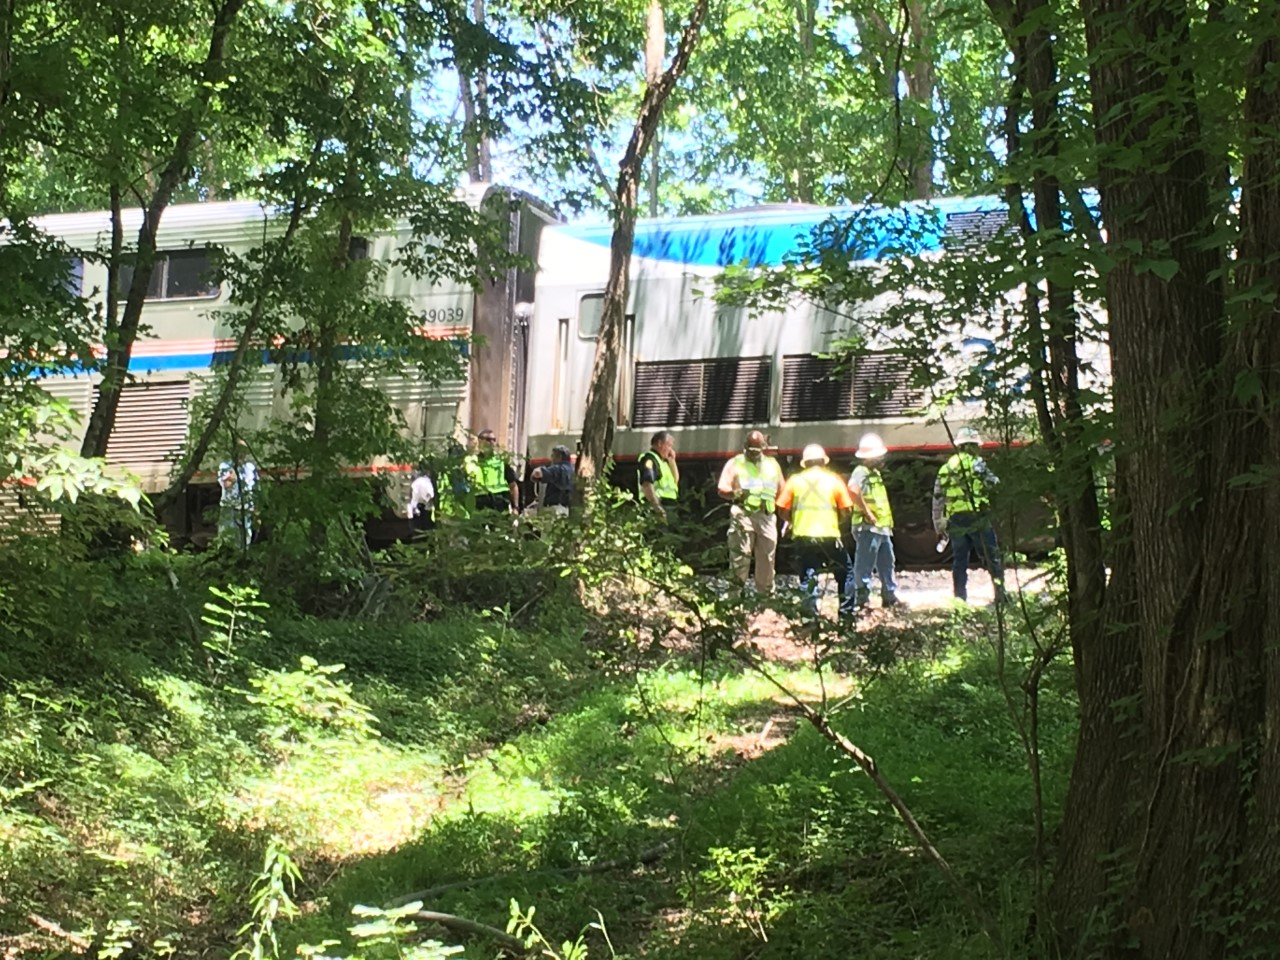 Three injured after Amtrak train crash in Bentonia: BREAKING